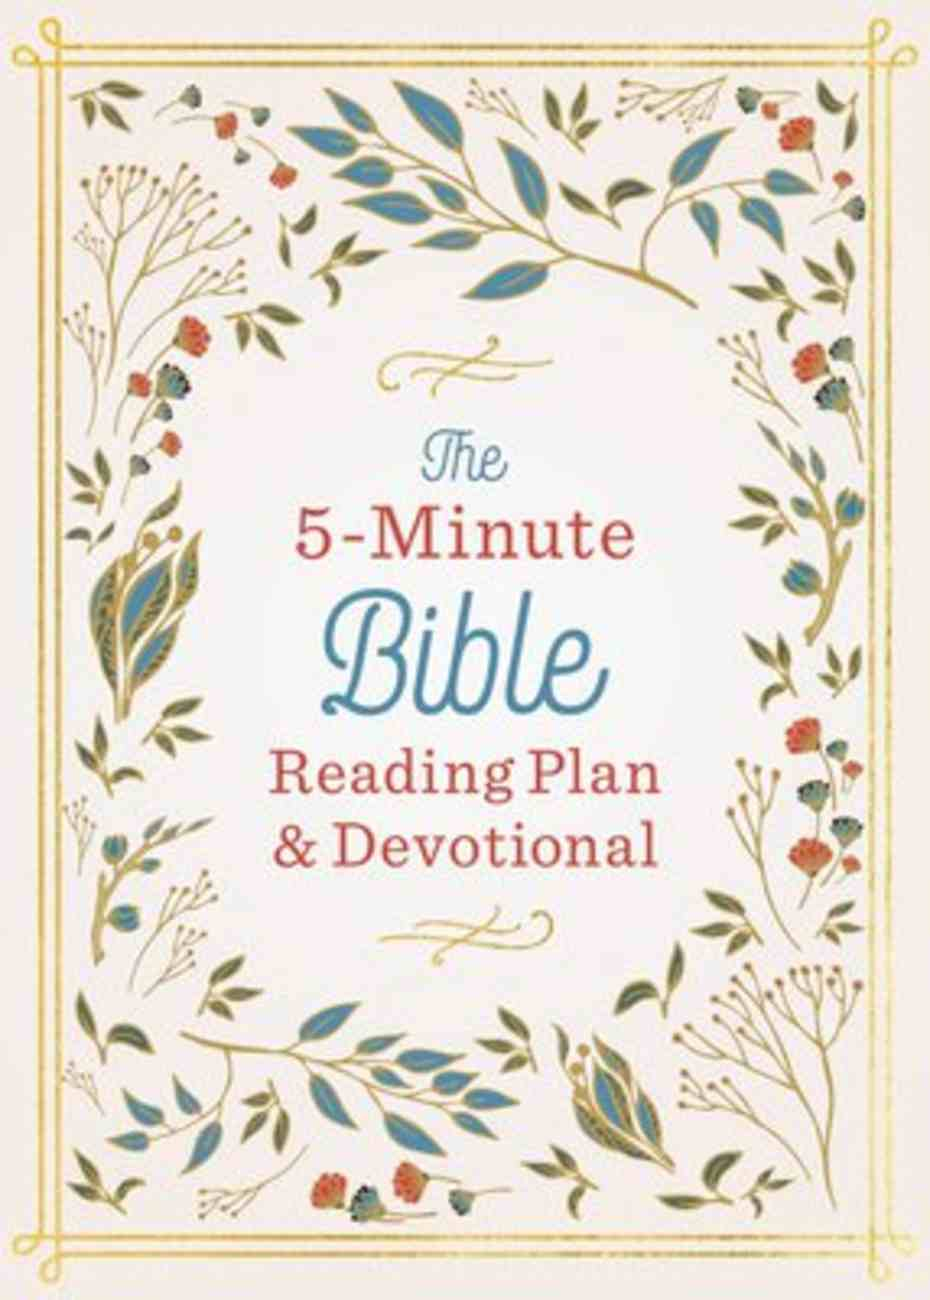 The 5-Minute Bible Reading Plan and Devotional Paperback